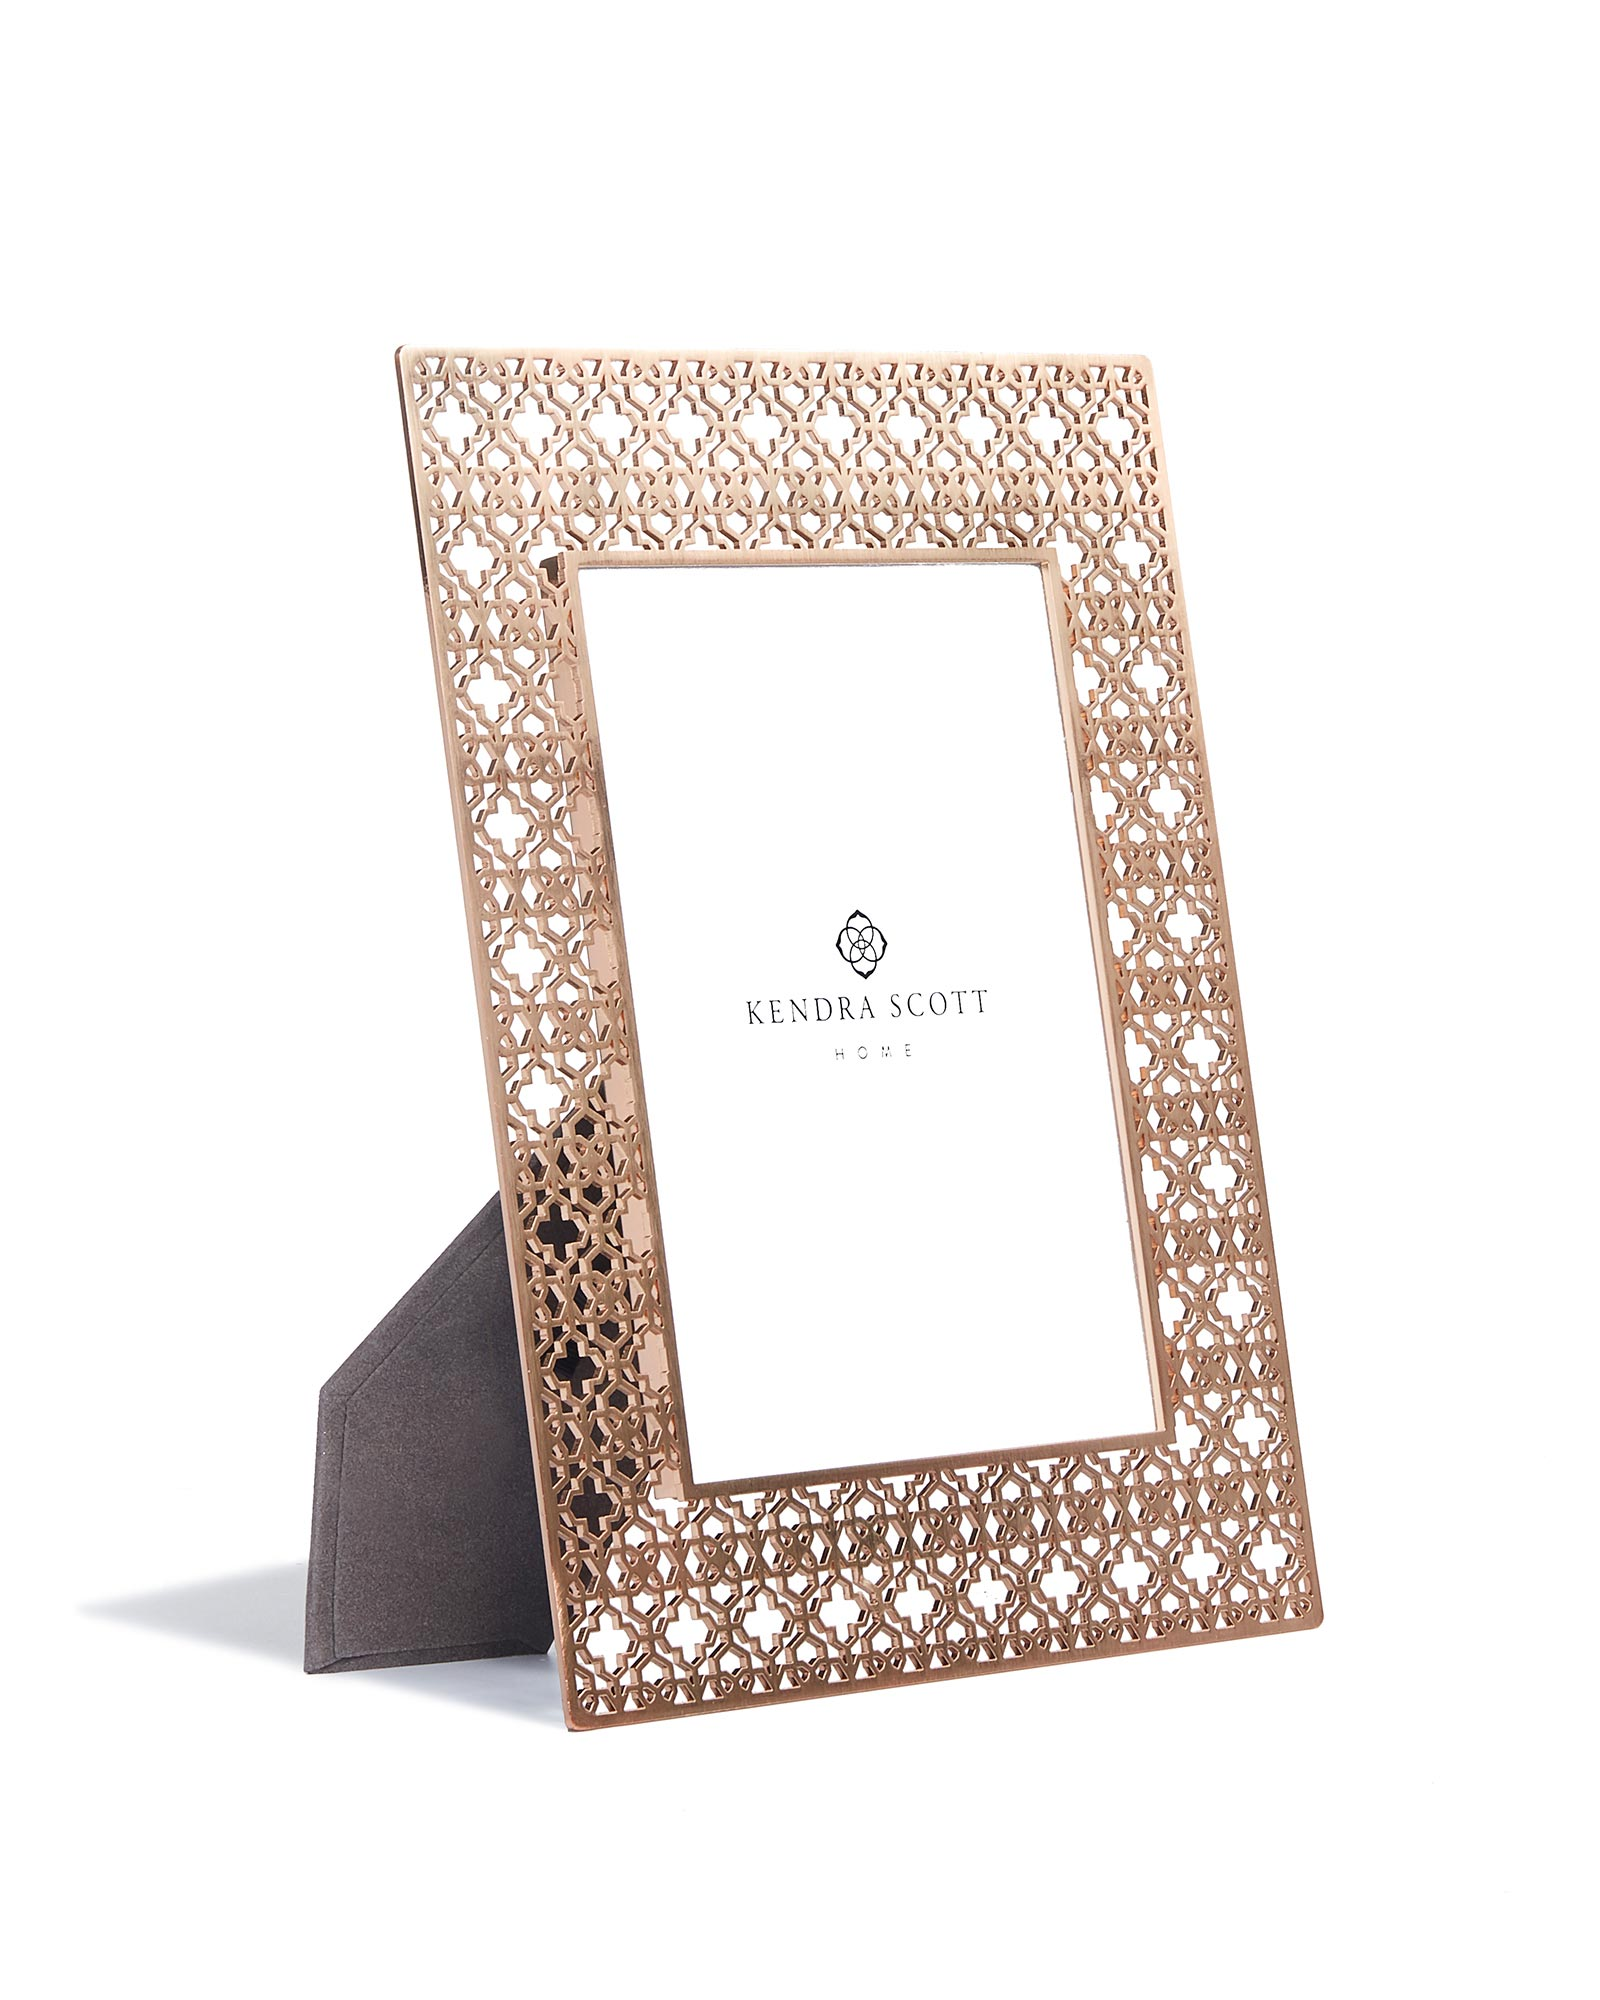 5x7 Filigree Photo Frame in Rose Gold